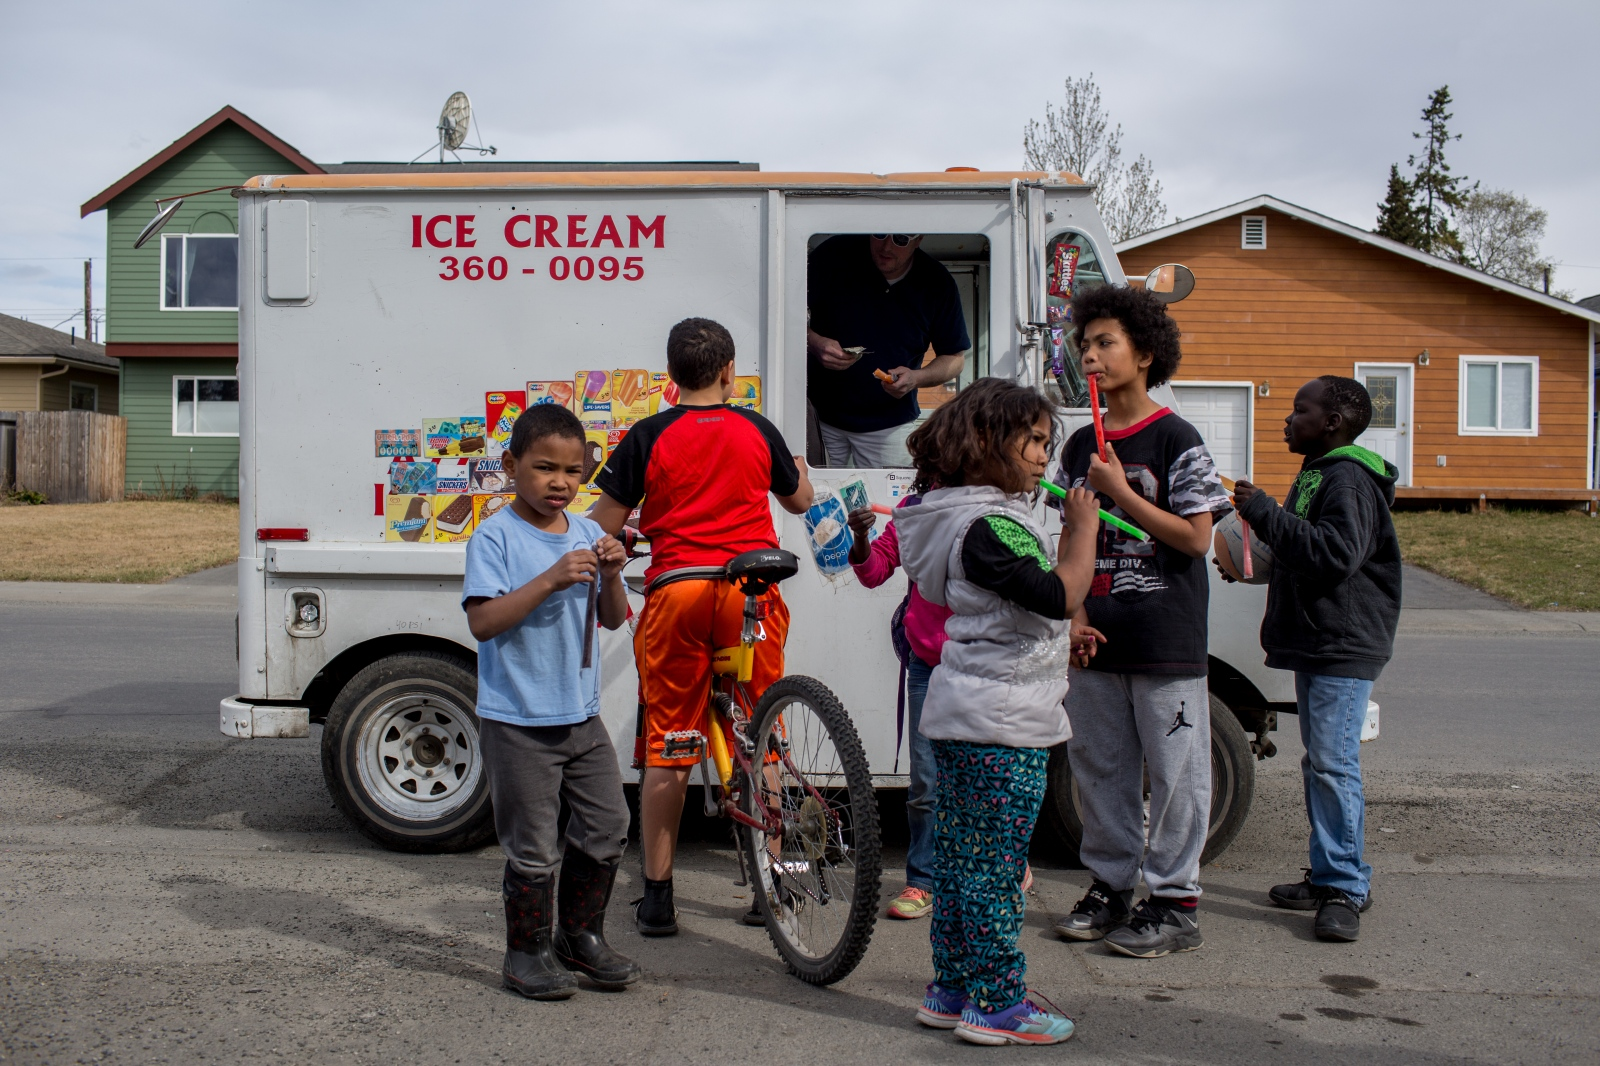 The ice cream truck is a regular character in the neighborhood of Mountain View. During the warmer months, its tinny songs an be heard making rounds throughout the afternoon and into the evening.